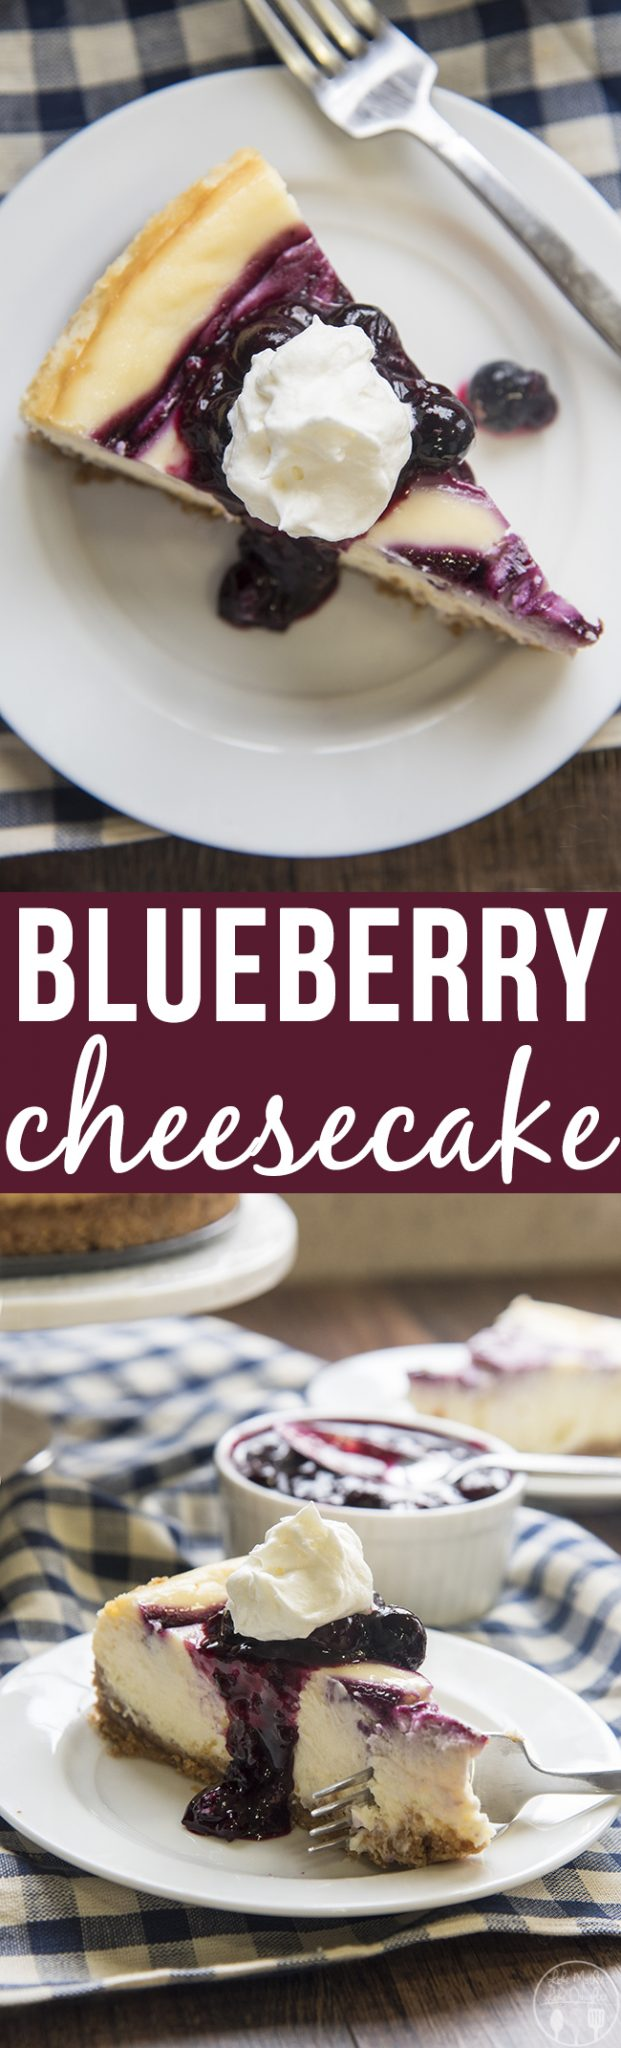 Blueberry Cheesecake - This blueberry cheesecake starts with a buttery graham cracker crust, a creamy cheesecake center, and a tangy blueberry swirl. This cheesecake is incredible!